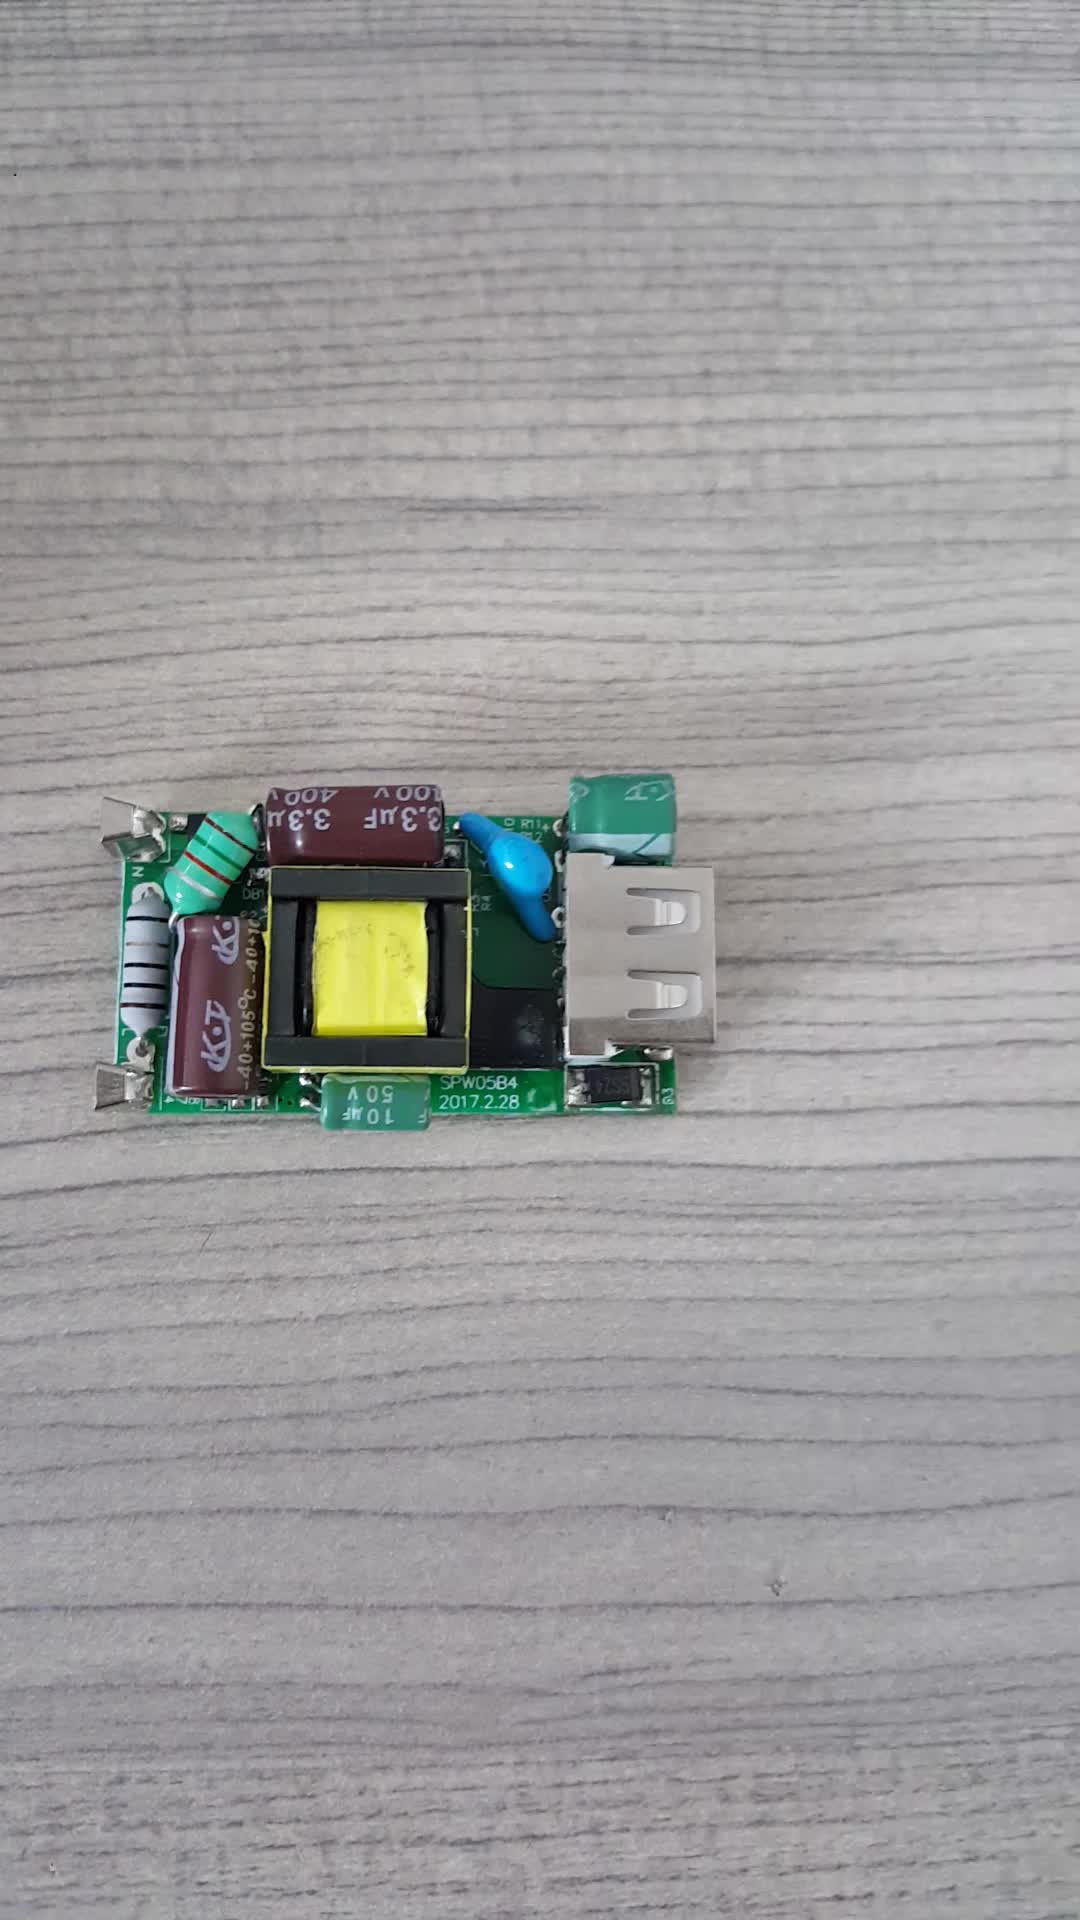 Mini usb mobile phone charger pcb board 5v1a pcb circuit boards